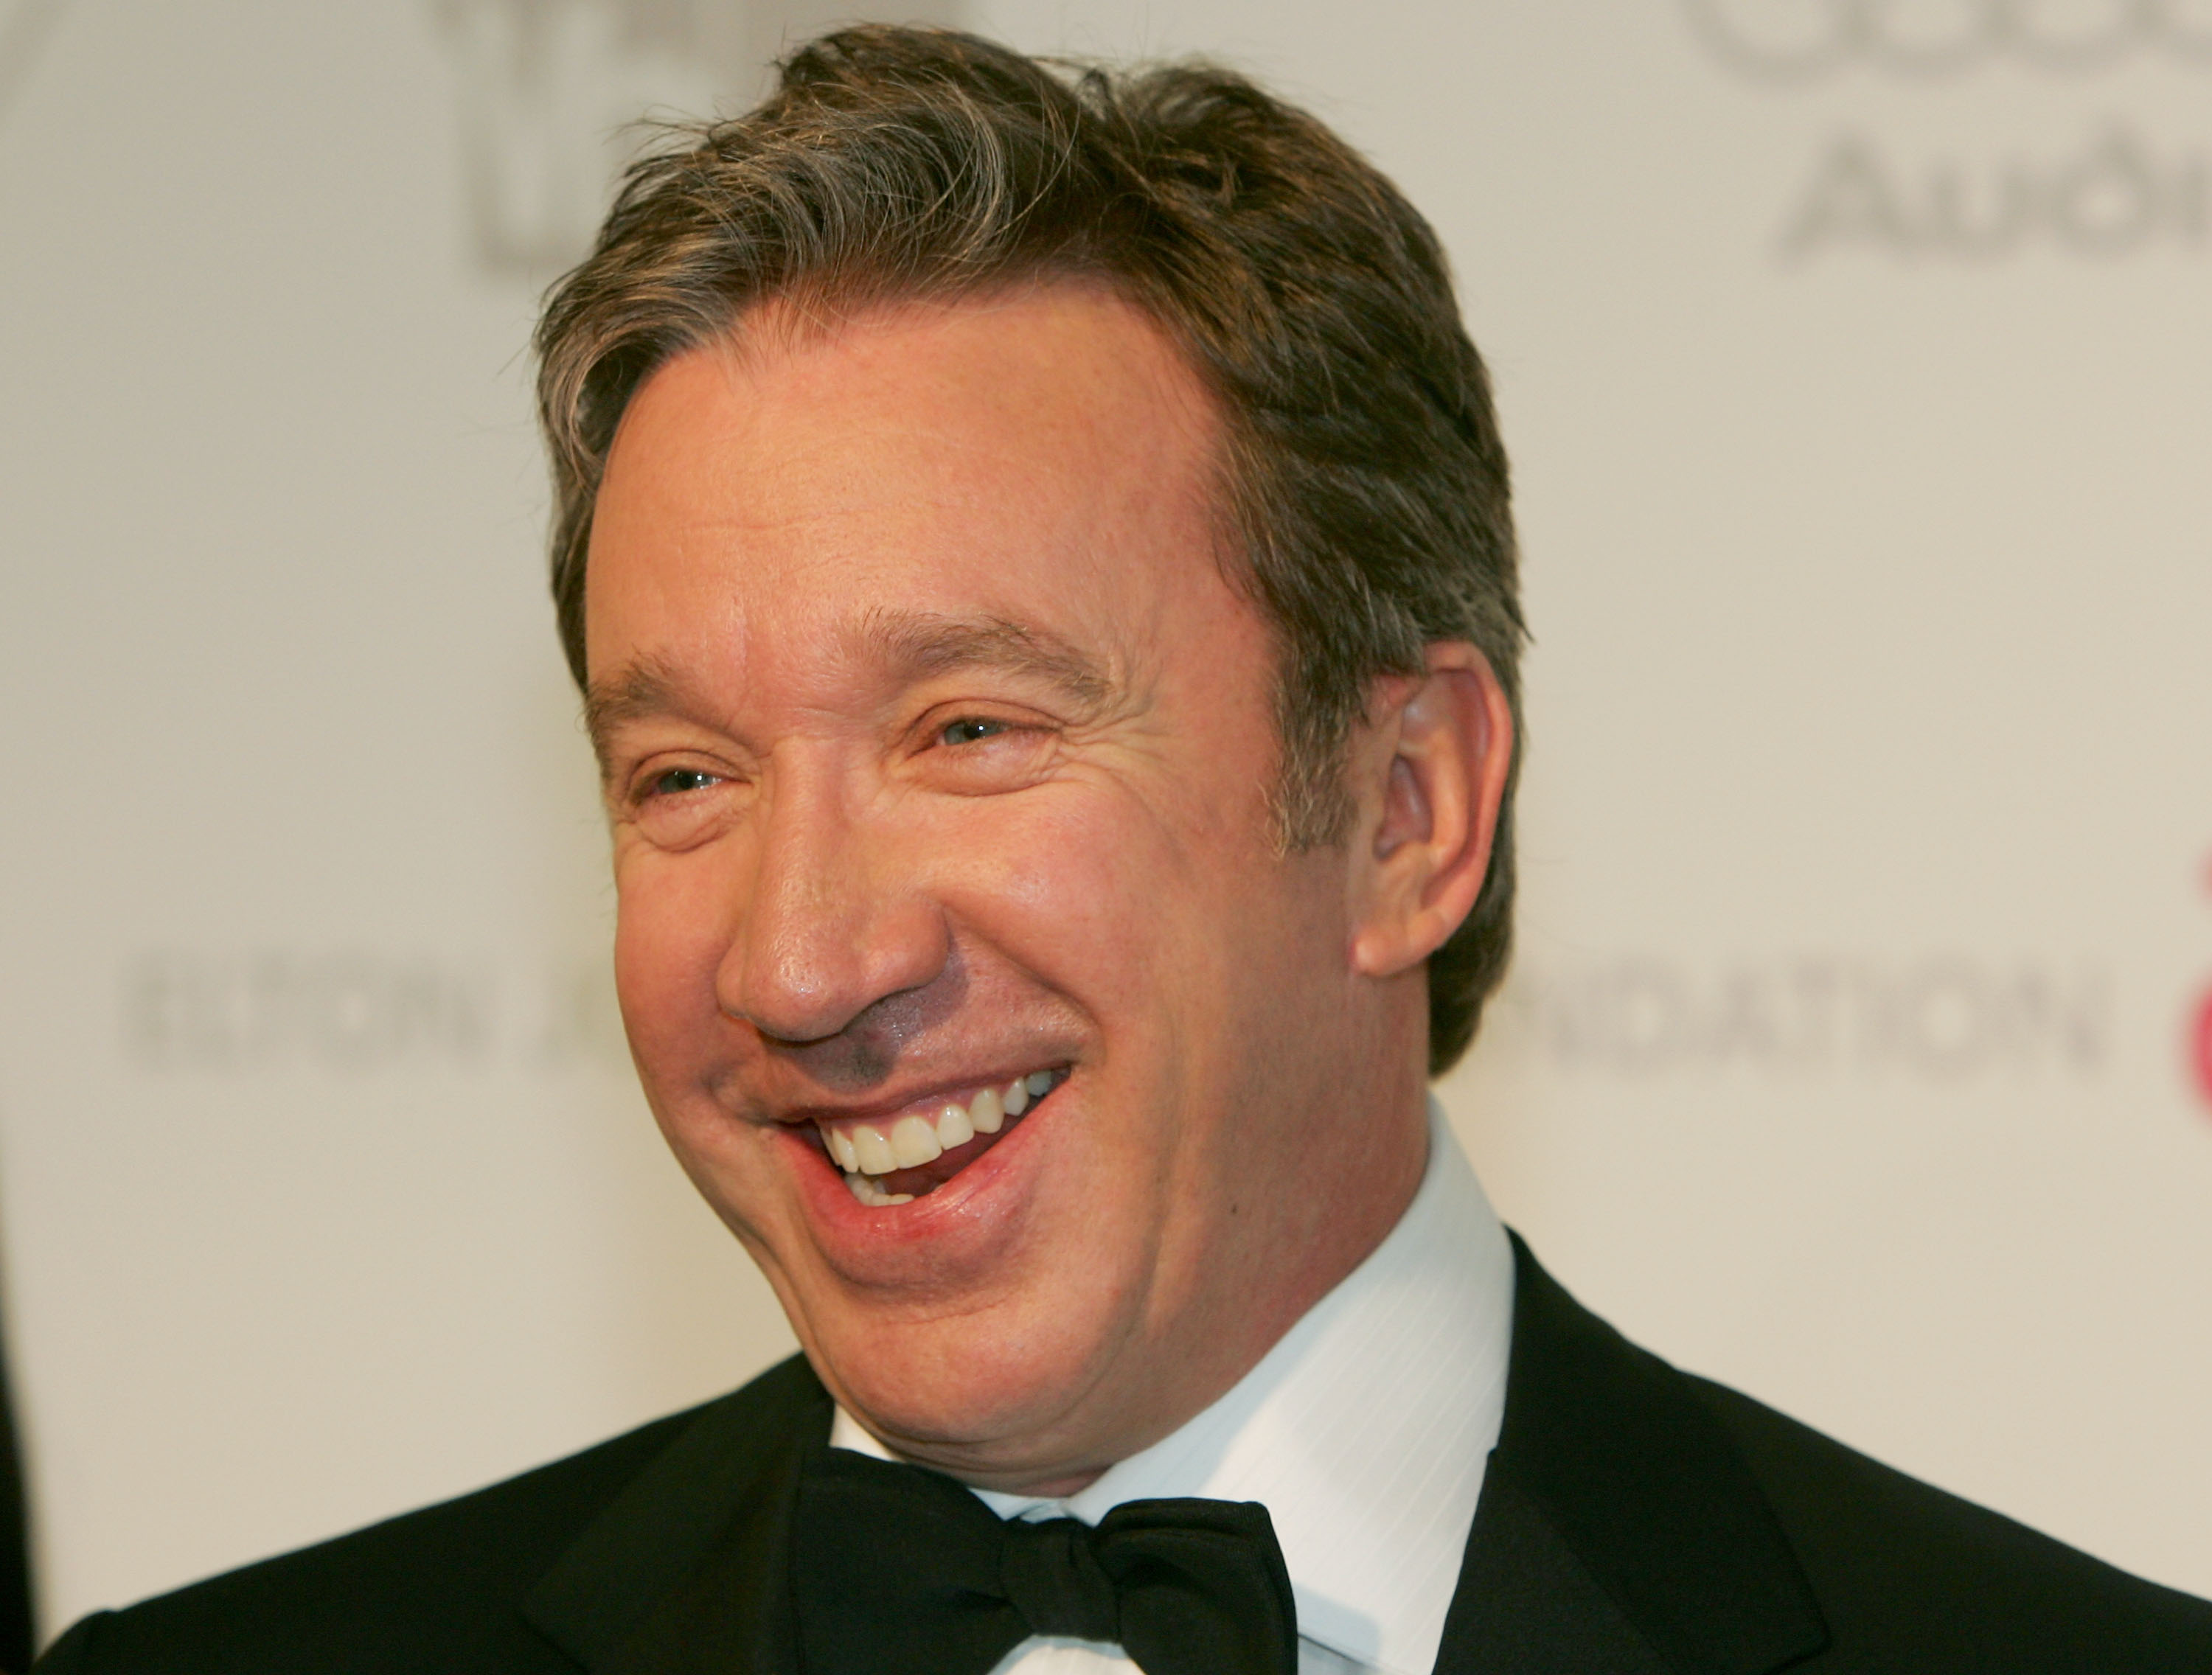 tim-allen-political-views-religion-hobbies